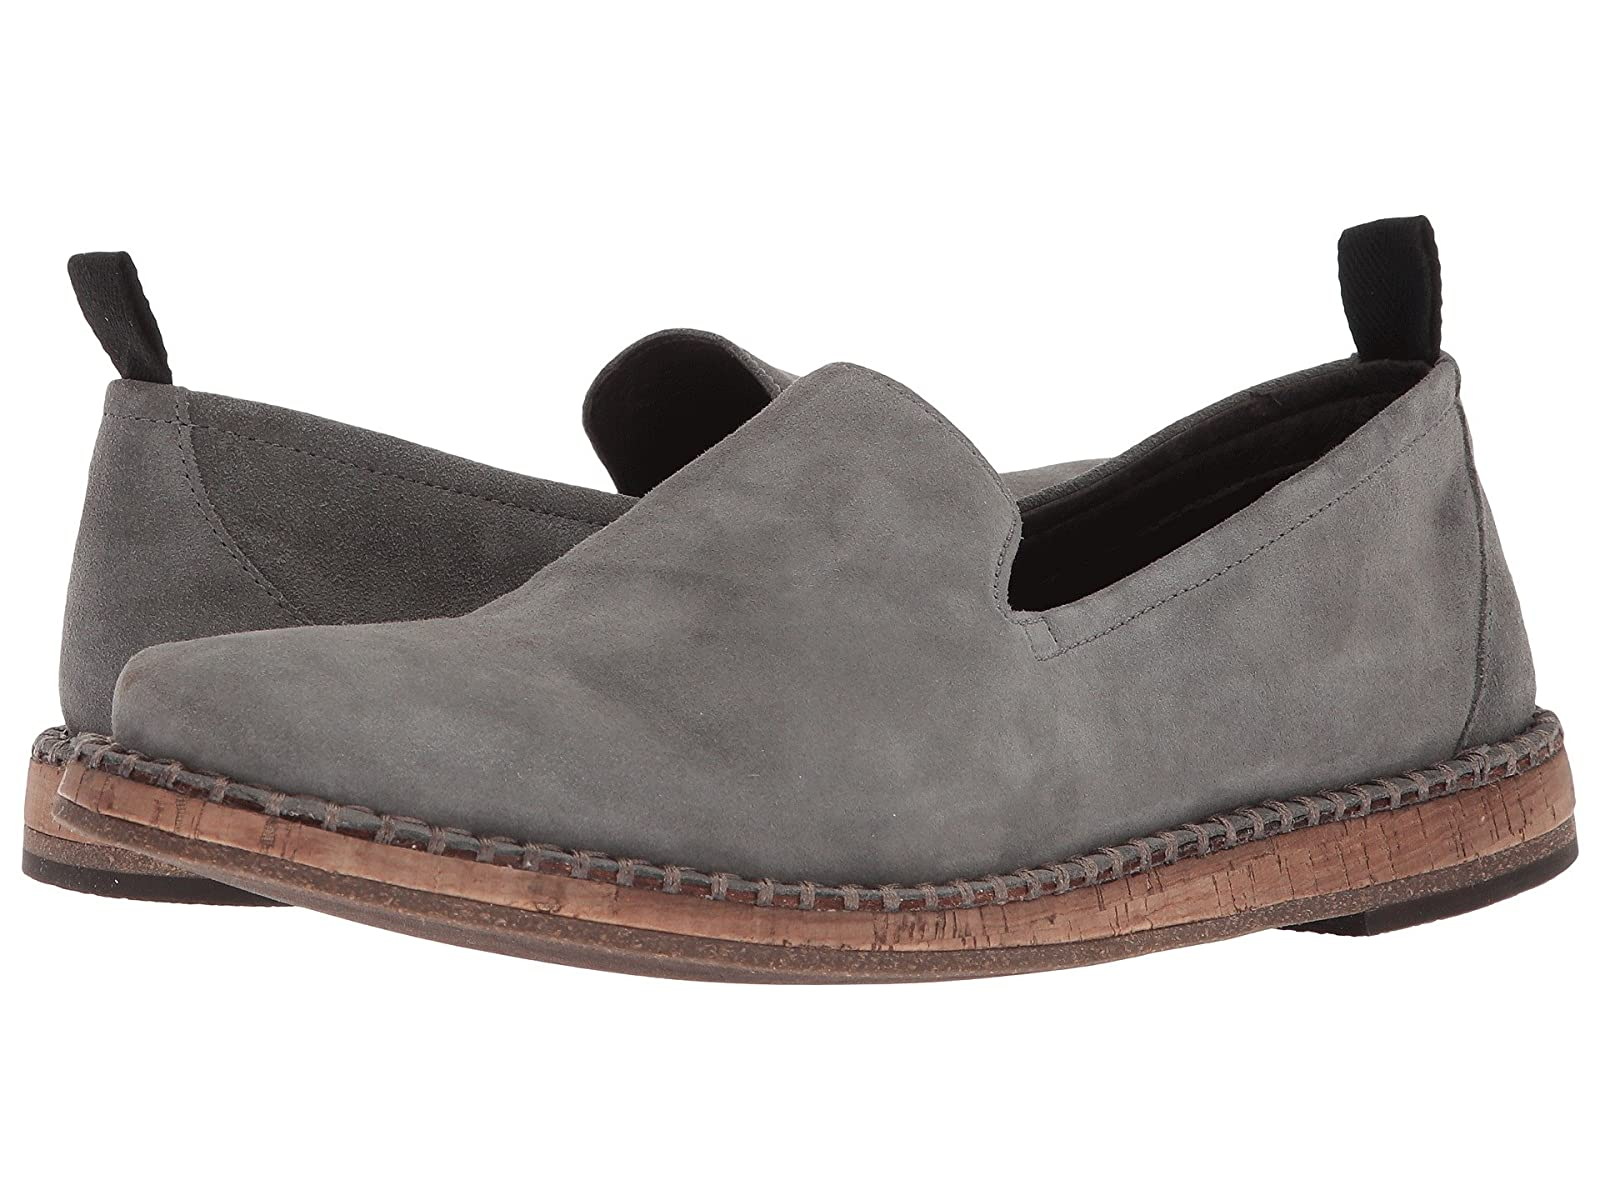 John Varvatos Zander LoaferAtmospheric grades have affordable shoes